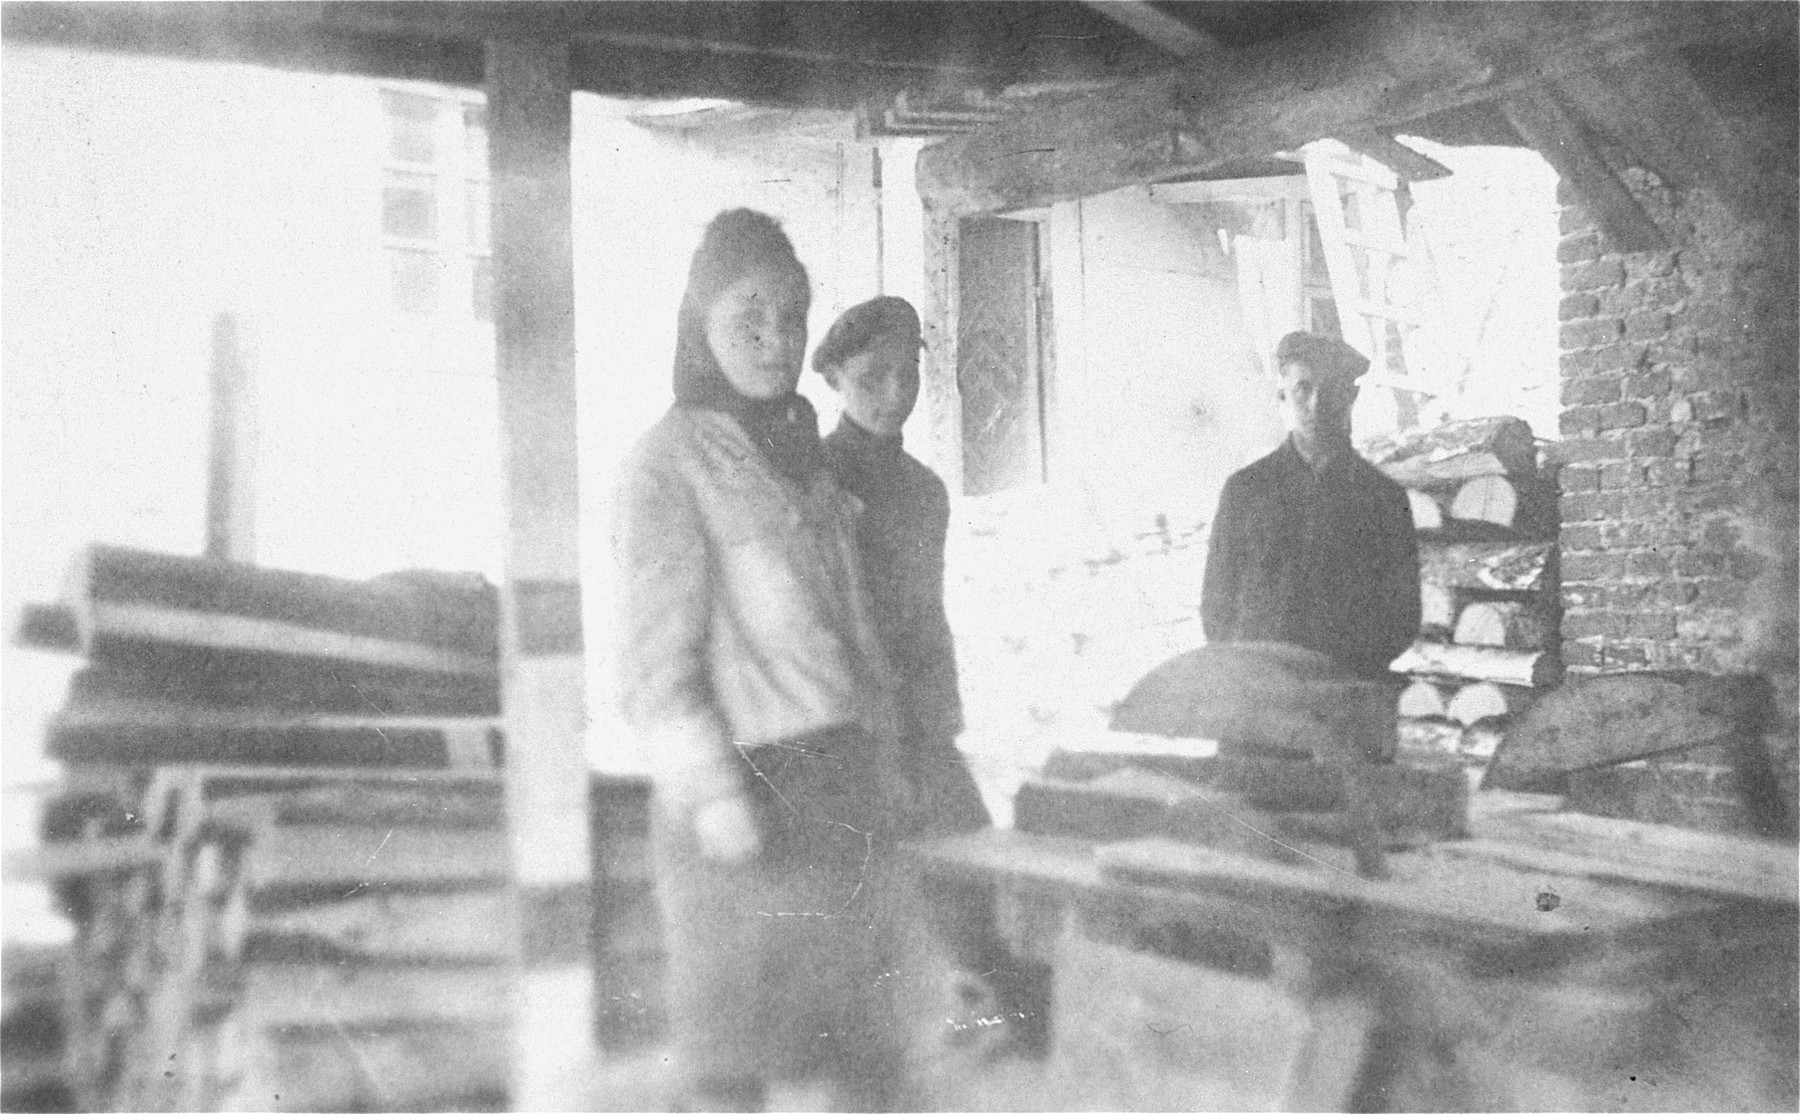 Three young Jews at a sawmill near the Wlodawa ghetto.  Pictured from left to right are Ester Rajs, Isaac Ejber and Jacob Rajs.  Ester perished in Sobibor; Isaac and Jacob were resistance fighters who were killed in Adampol.